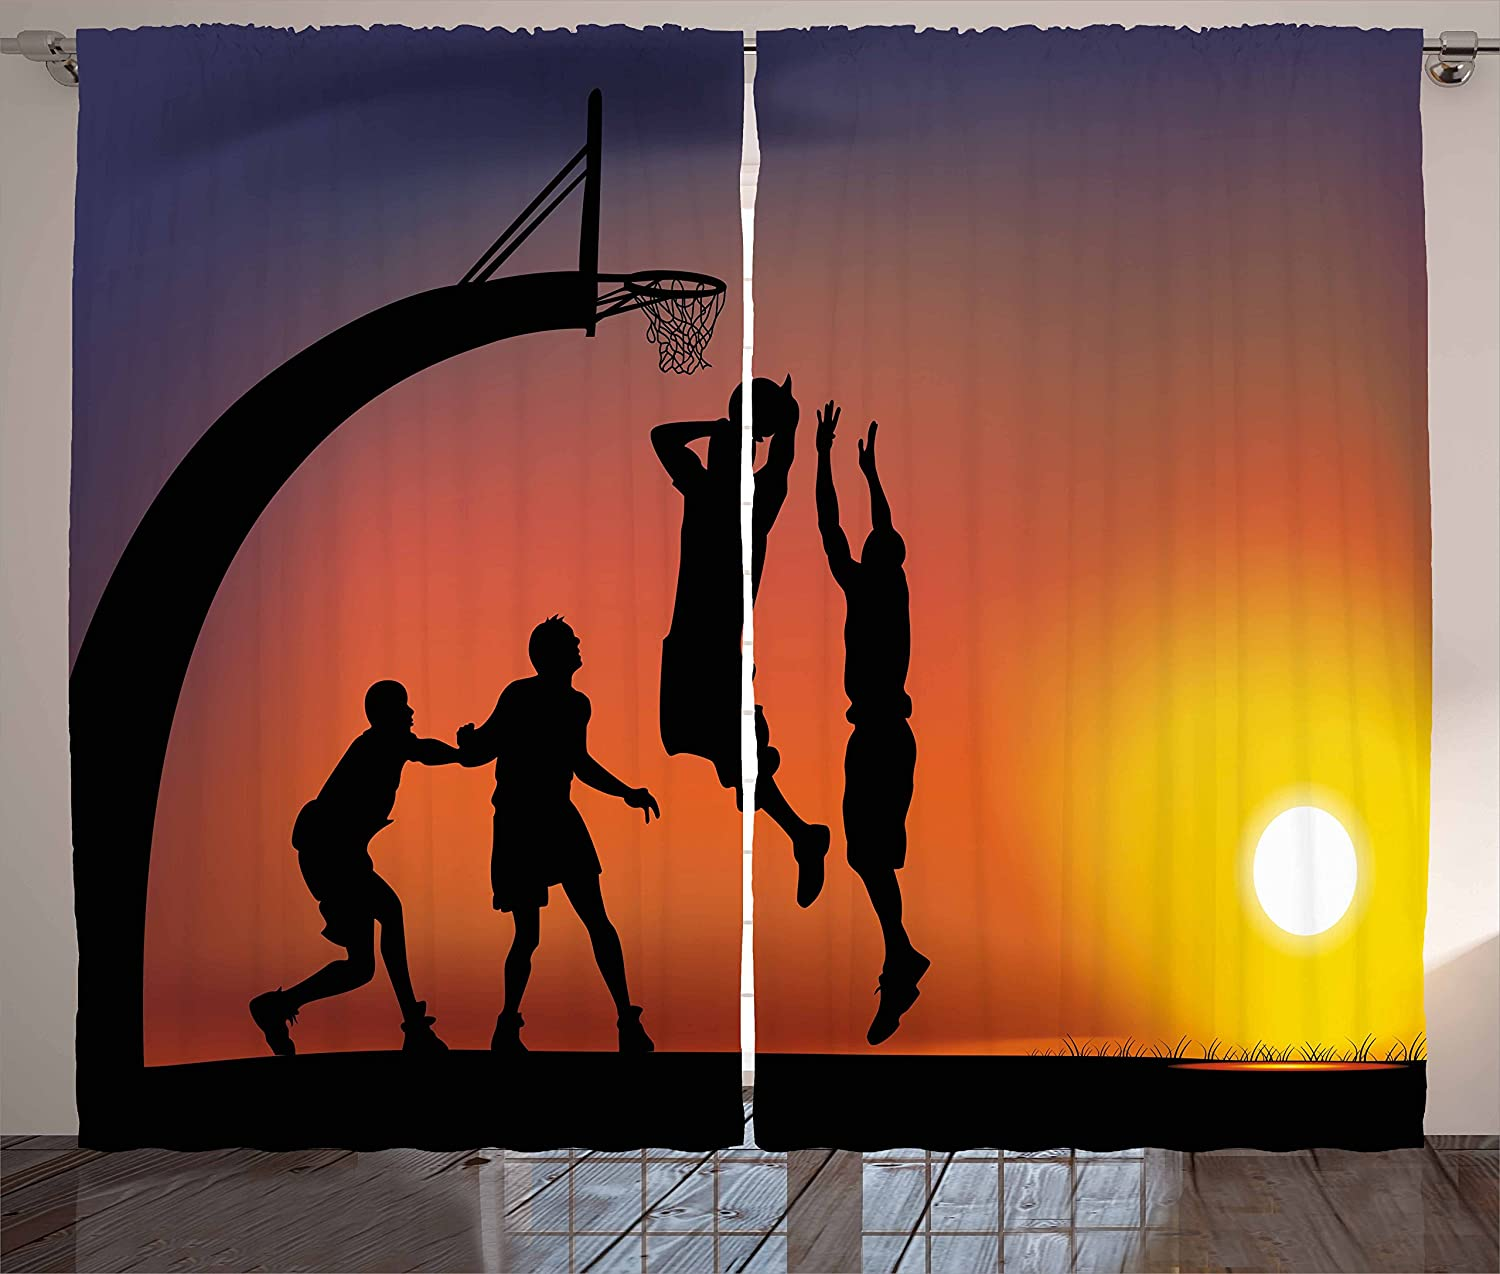 Ambesonne Teen Room Curtains, Boys Playing Basketball at Sunset Horizon Sky with Dramatic Scenery, Living Room Bedroom Window Drapes 2 Panel Set, 108